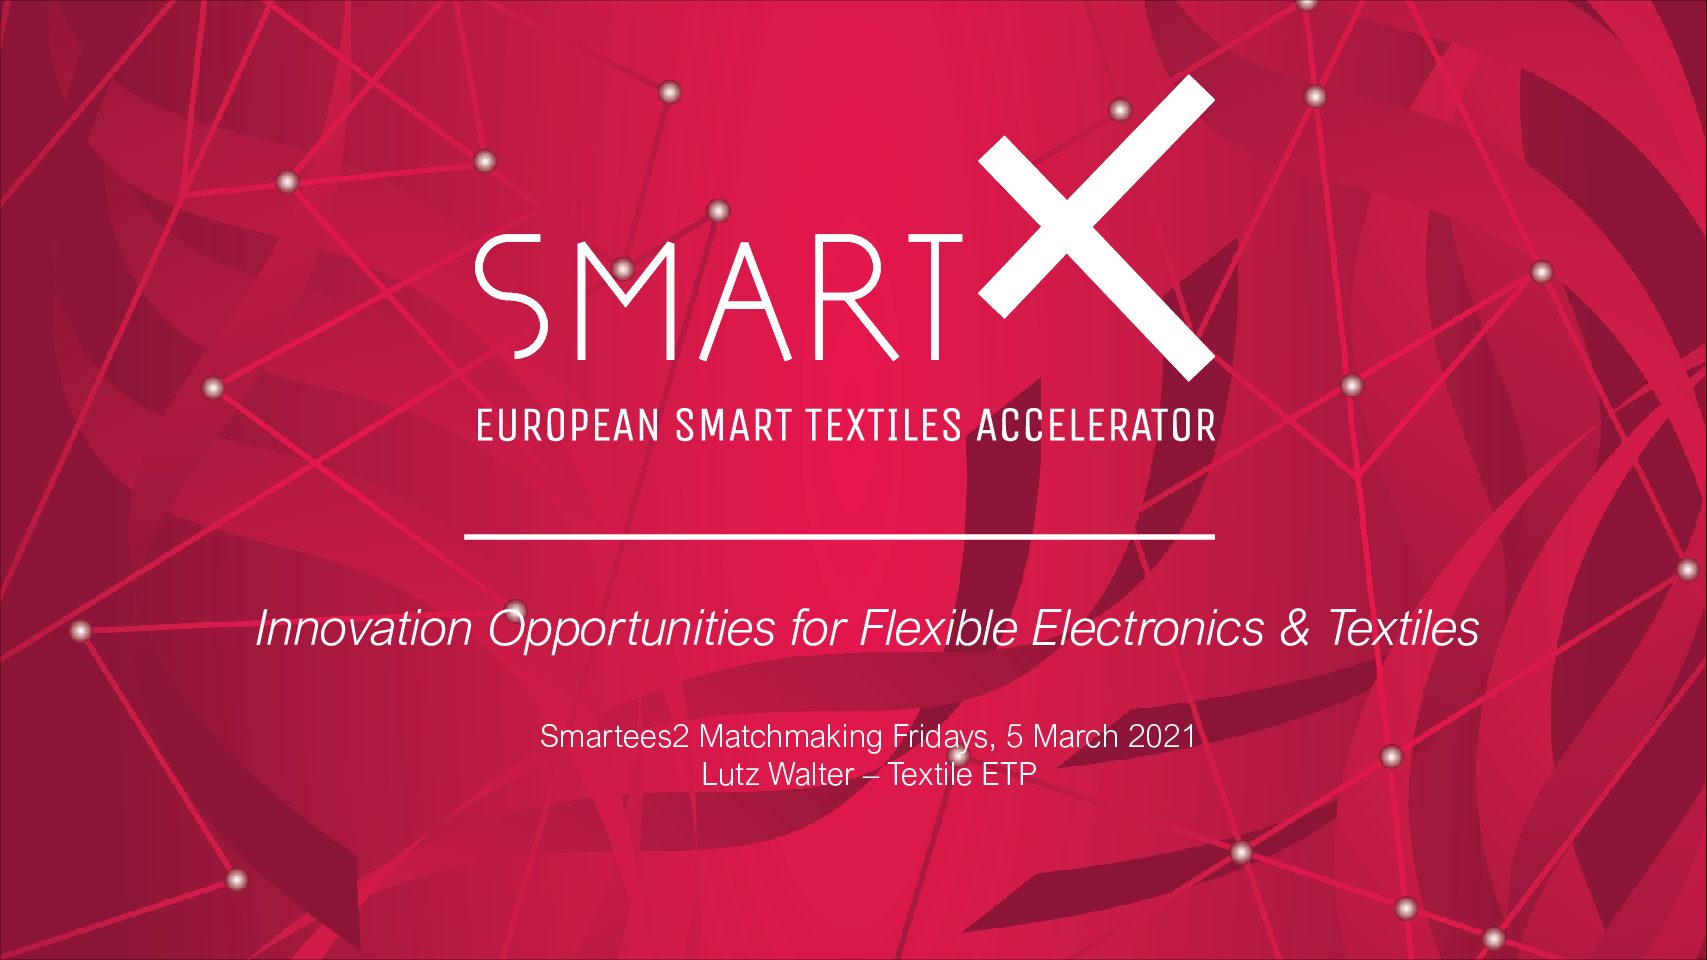 Presentation: Innovation Opportunities for Flexible Electronics & Textiles